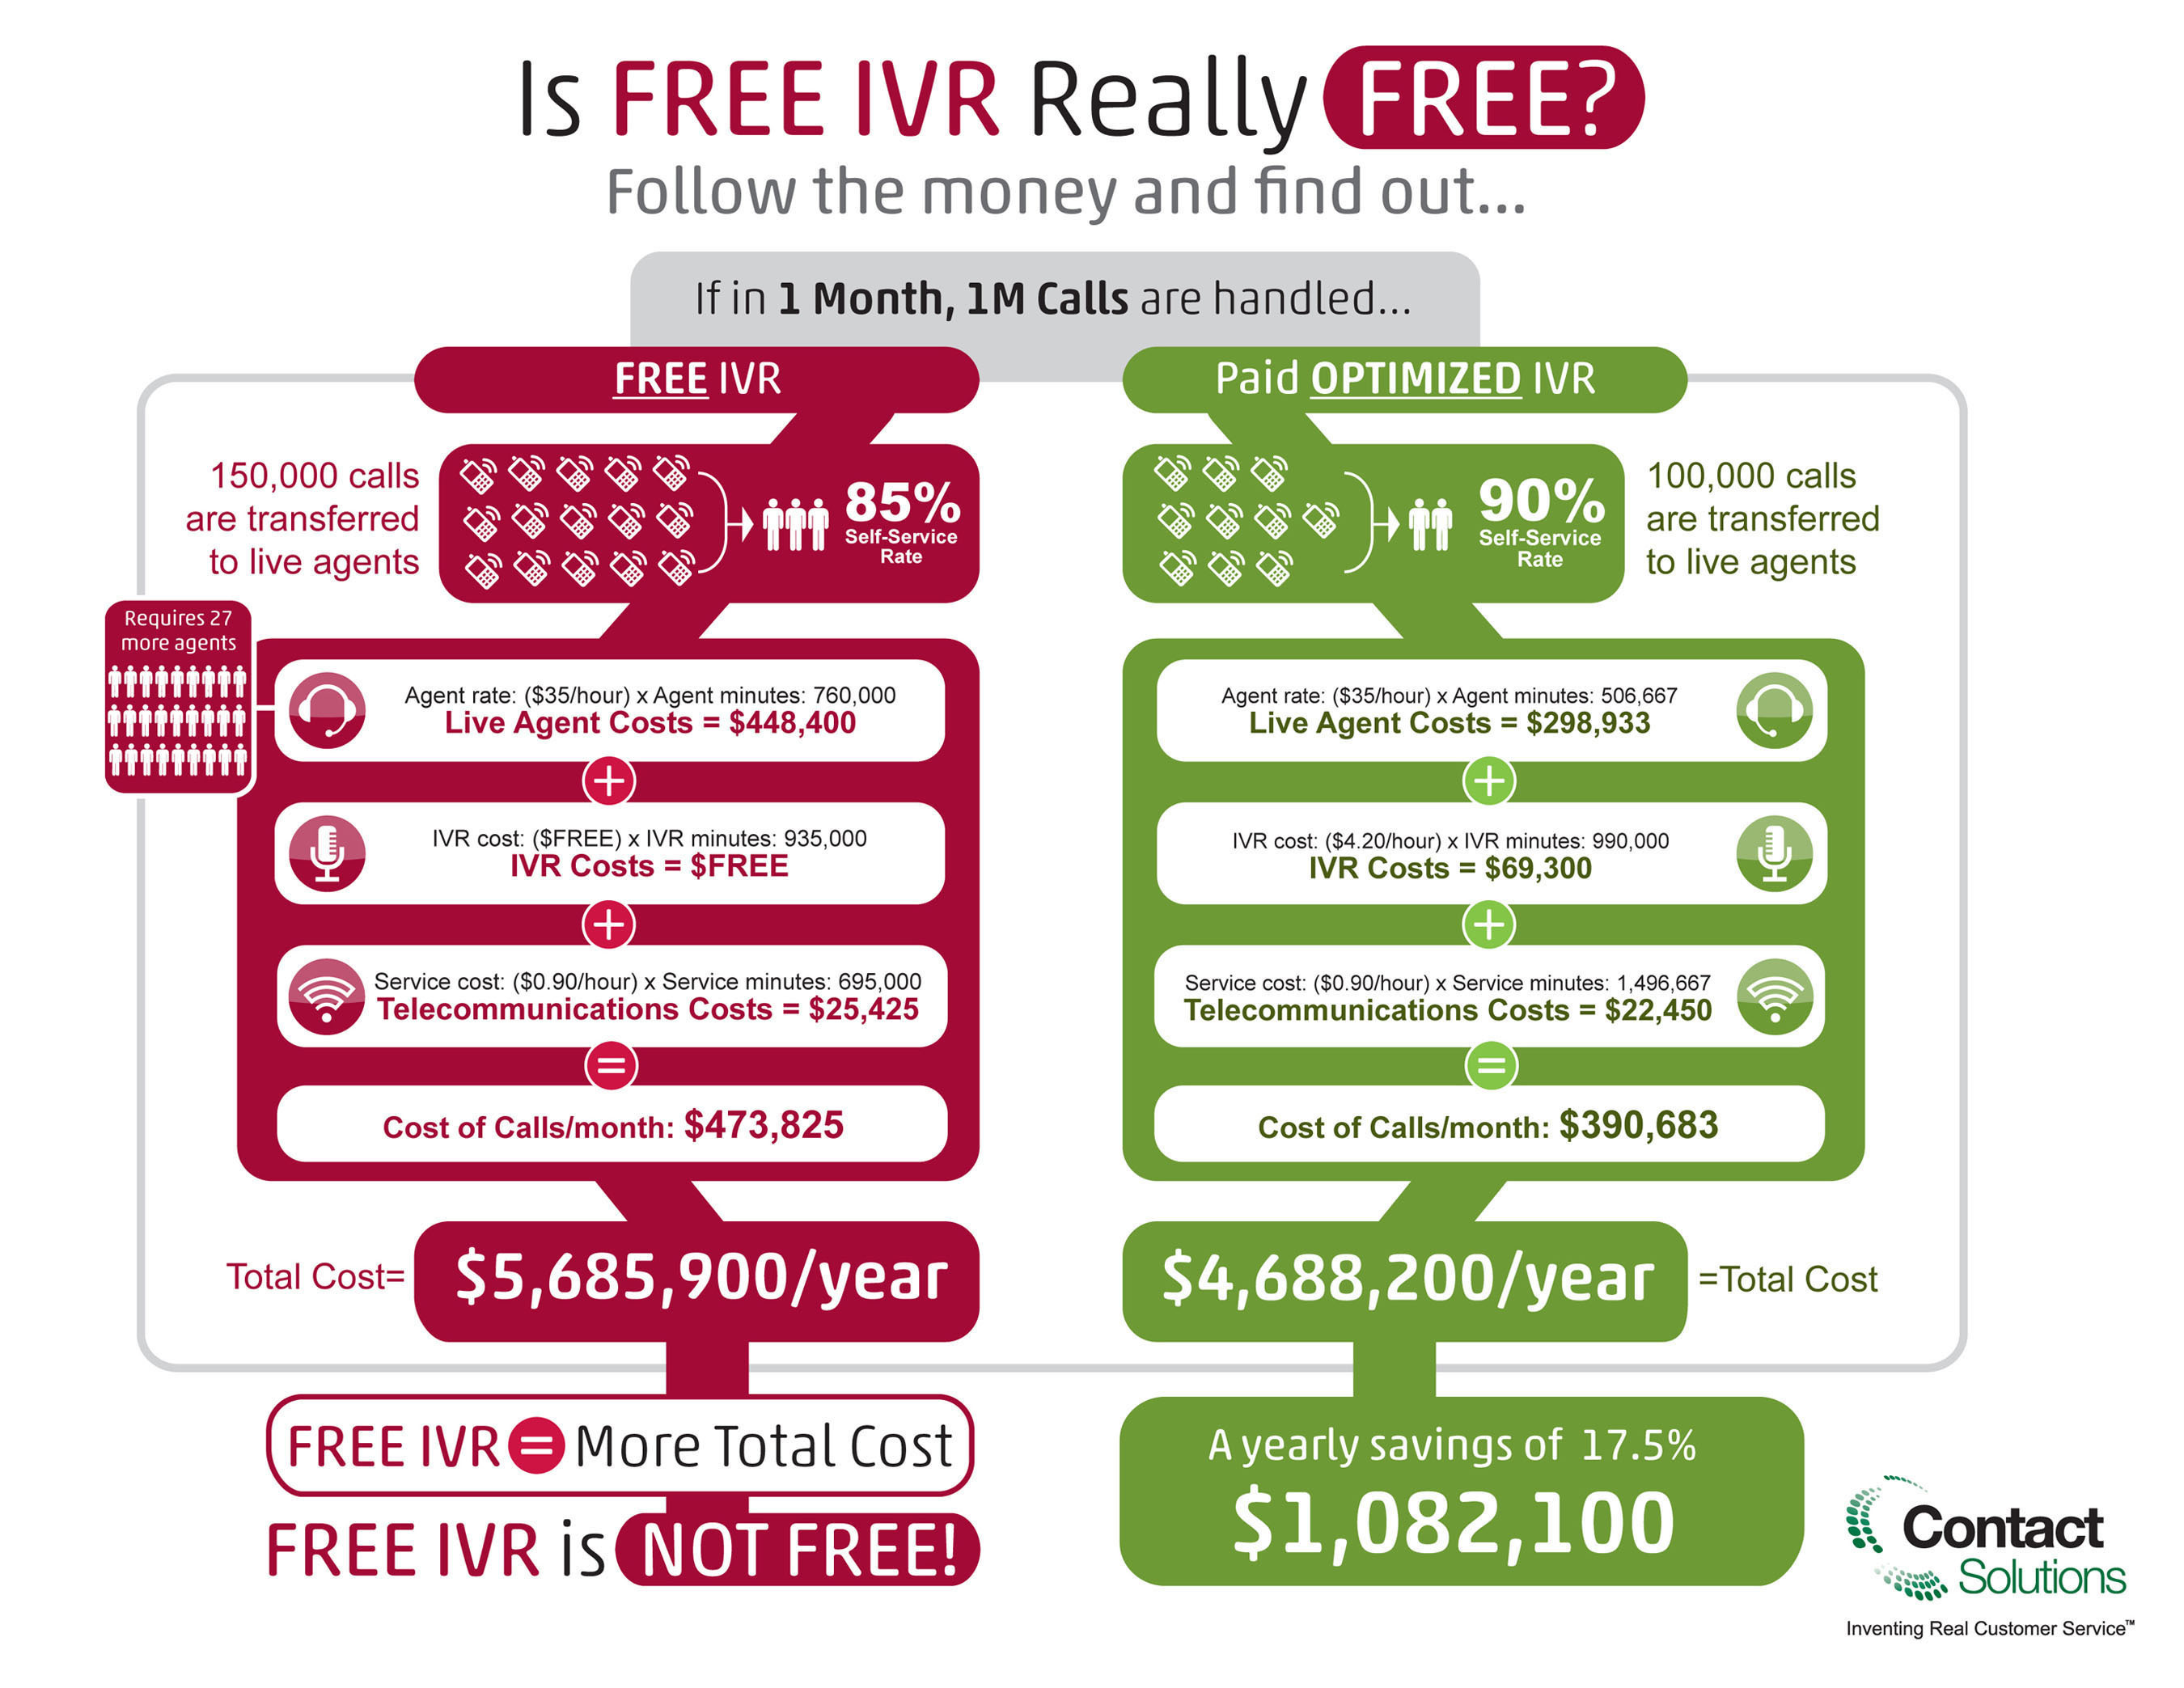 "Contact Solutions, a leading provider of cloud-based customer self-service solutions, today released an infographic examining Interactive Voice Response (IVR) costs and savings potential. The infographic details one company's major monetary savings with the paid, optimized IVR solutions offered by Contact Solutions over the ""free"" IVR services many business process outsourcers provide.  (PRNewsFoto/Contact Solutions)"